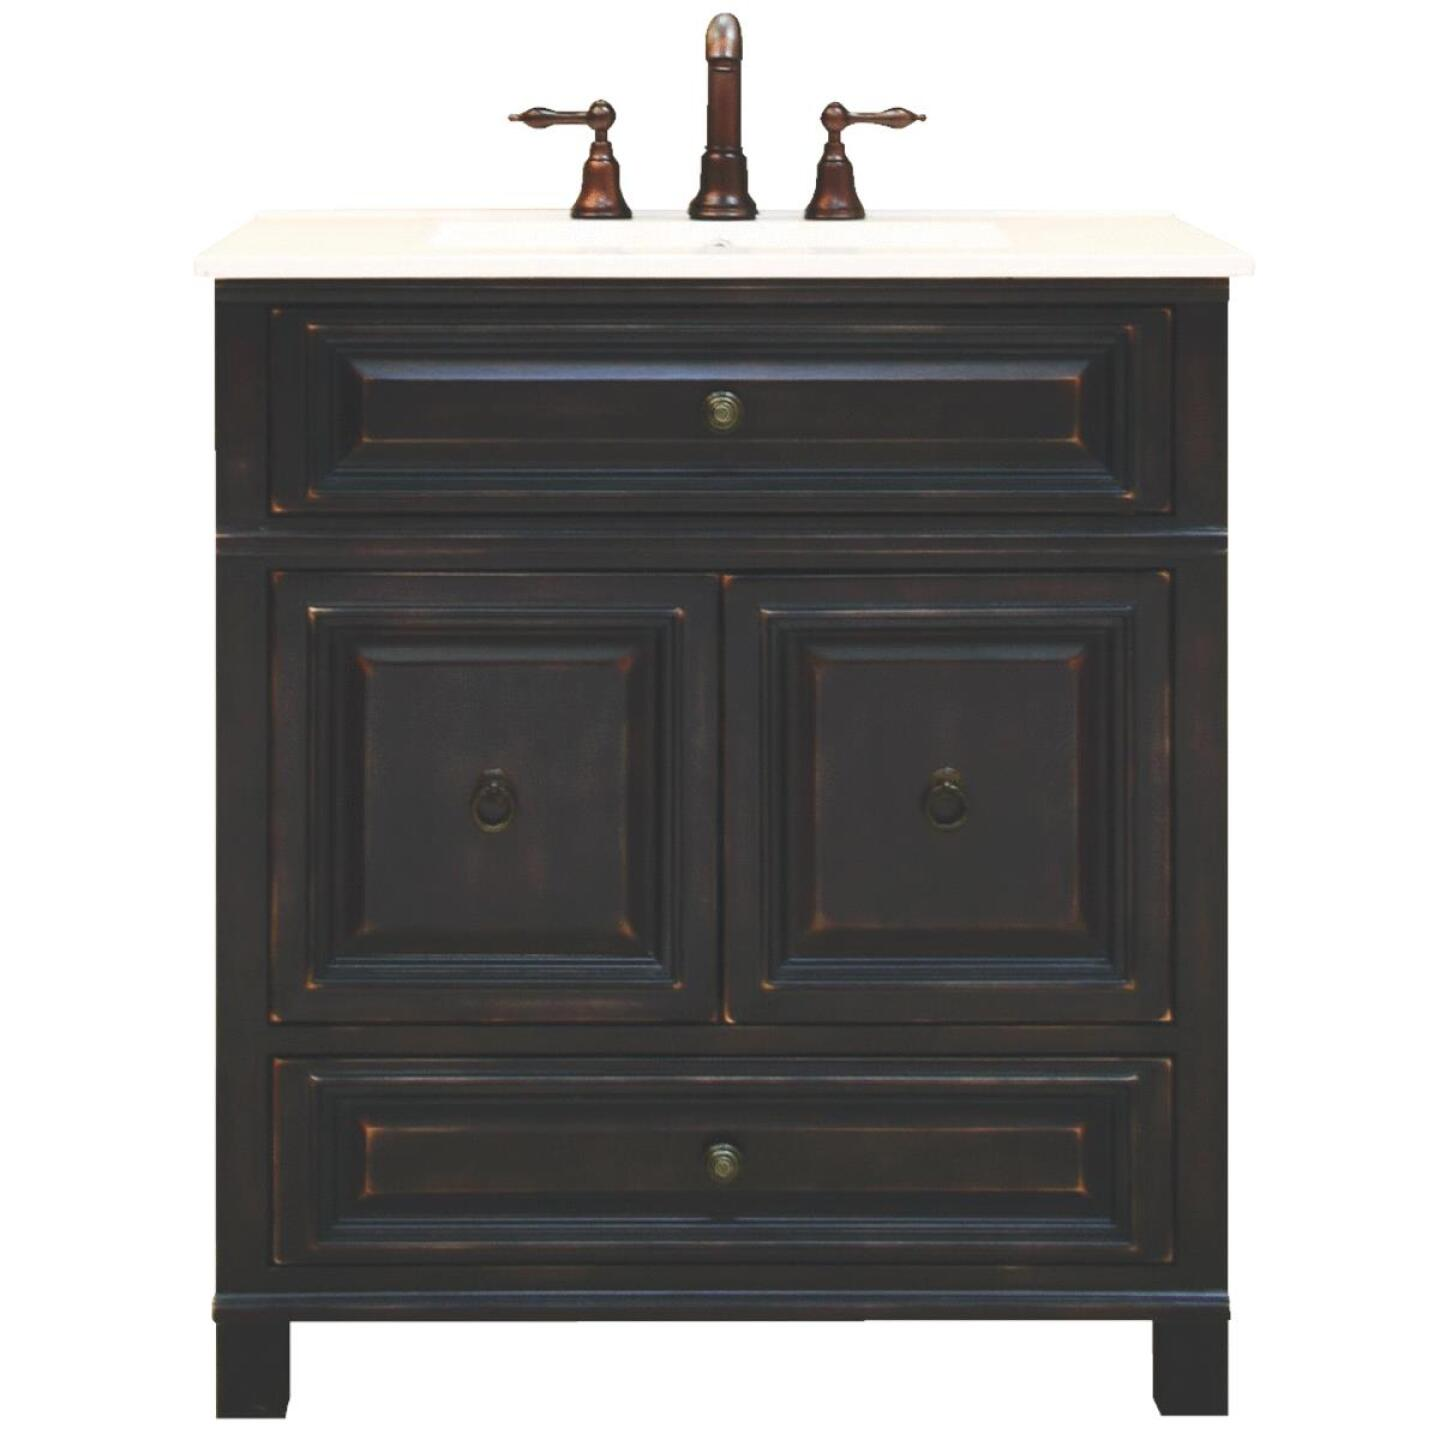 Sunny Wood Barton Hill Black Onyx 30 In. W x 34 In. H x 21 In. D Vanity Base, 2 Door/1 Drawer Image 115